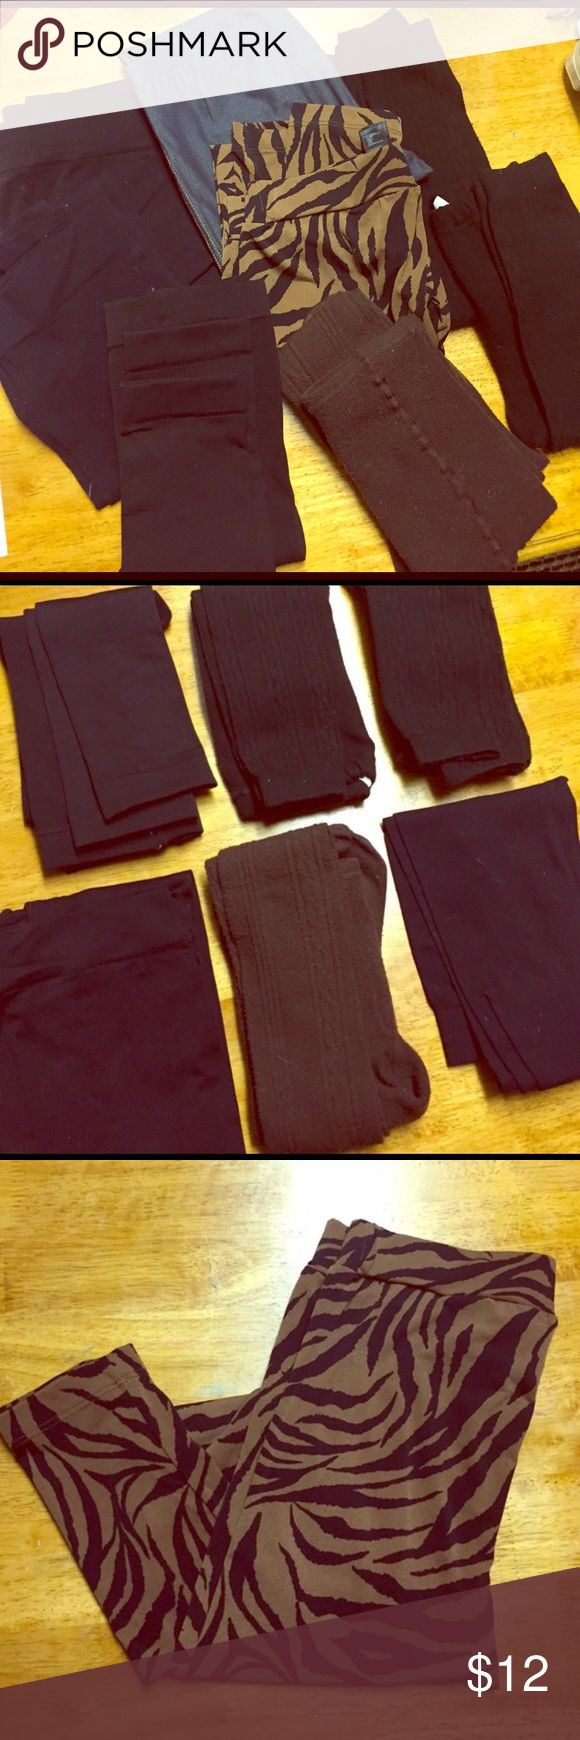 Leggings Bundle (7 pairs) -7 Pairs of Leggings- Great deal on this bundle! You get two pairs of black footless leggings with slight detail on them, one pair of brown footed leggings with detail, two pairs of black stretch footless plain leggings, one pair of black footless plain leggings that are thick for extra warmth or as an under garment for skiing, and one pair of stretchy jean like material leggings from French Connection...all are one size but mostly fit size small 👉 (TIGER PRINT…